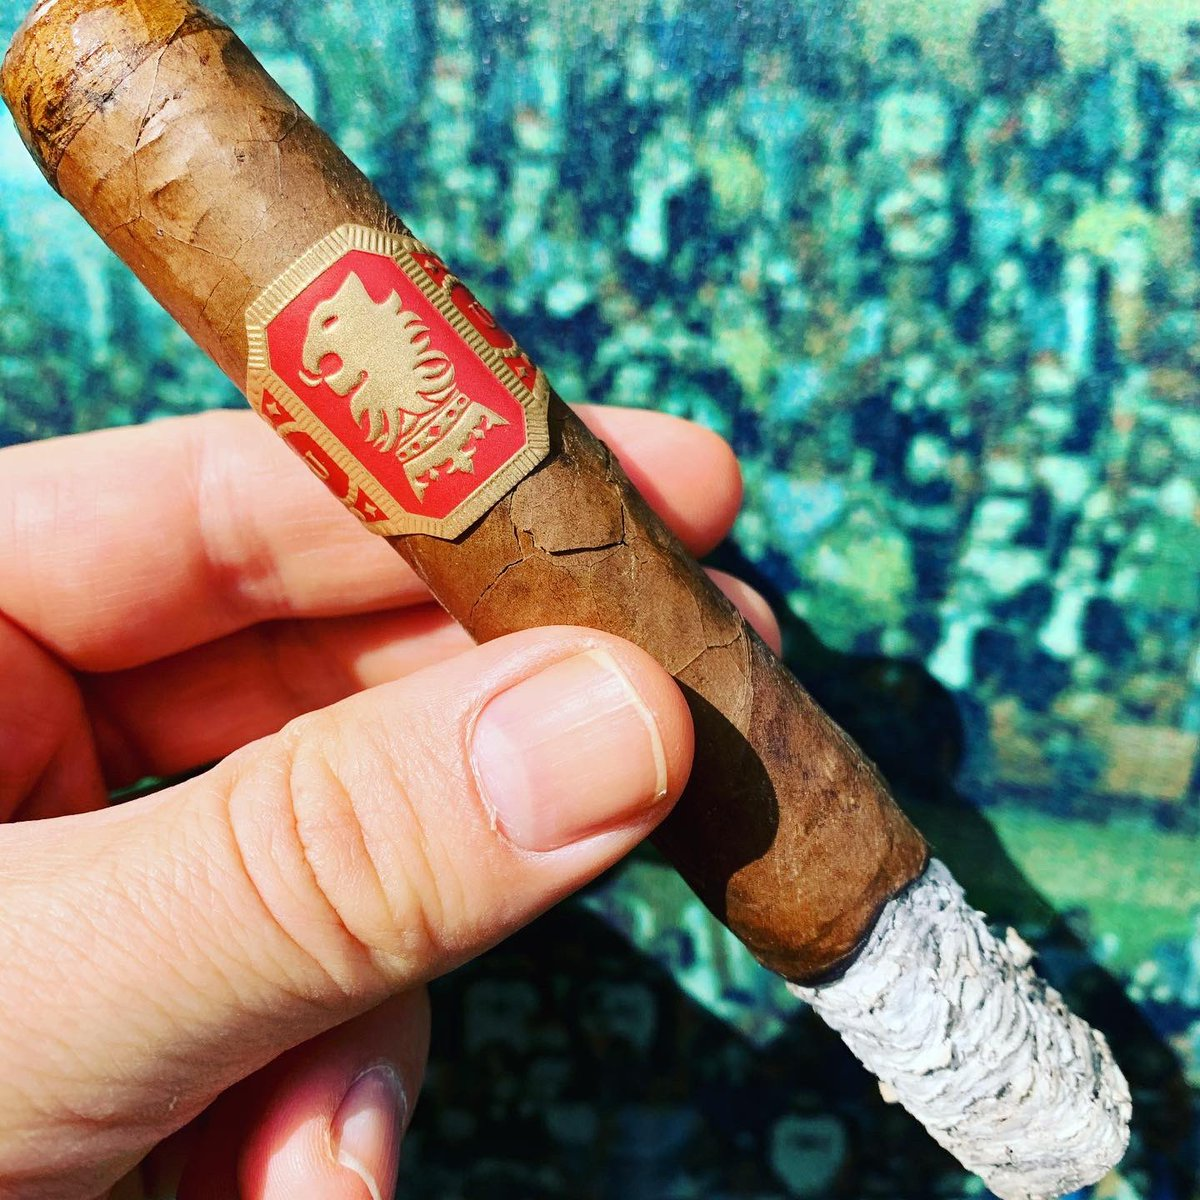 Undercrown Sungrown...grows on me the more I smoke itfrom @drewestatecigar   #cigar #cigars #botl #sotl #humidor #smoking #cigarlife #cigarlifestyle #cigarro #cigarians #pssita #cigarlover #cigarworld #cigarpic #cigarsocialclub #cigarlifeguy #nowsmoking  #cigarswagpic.twitter.com/fMVO9U1wWk